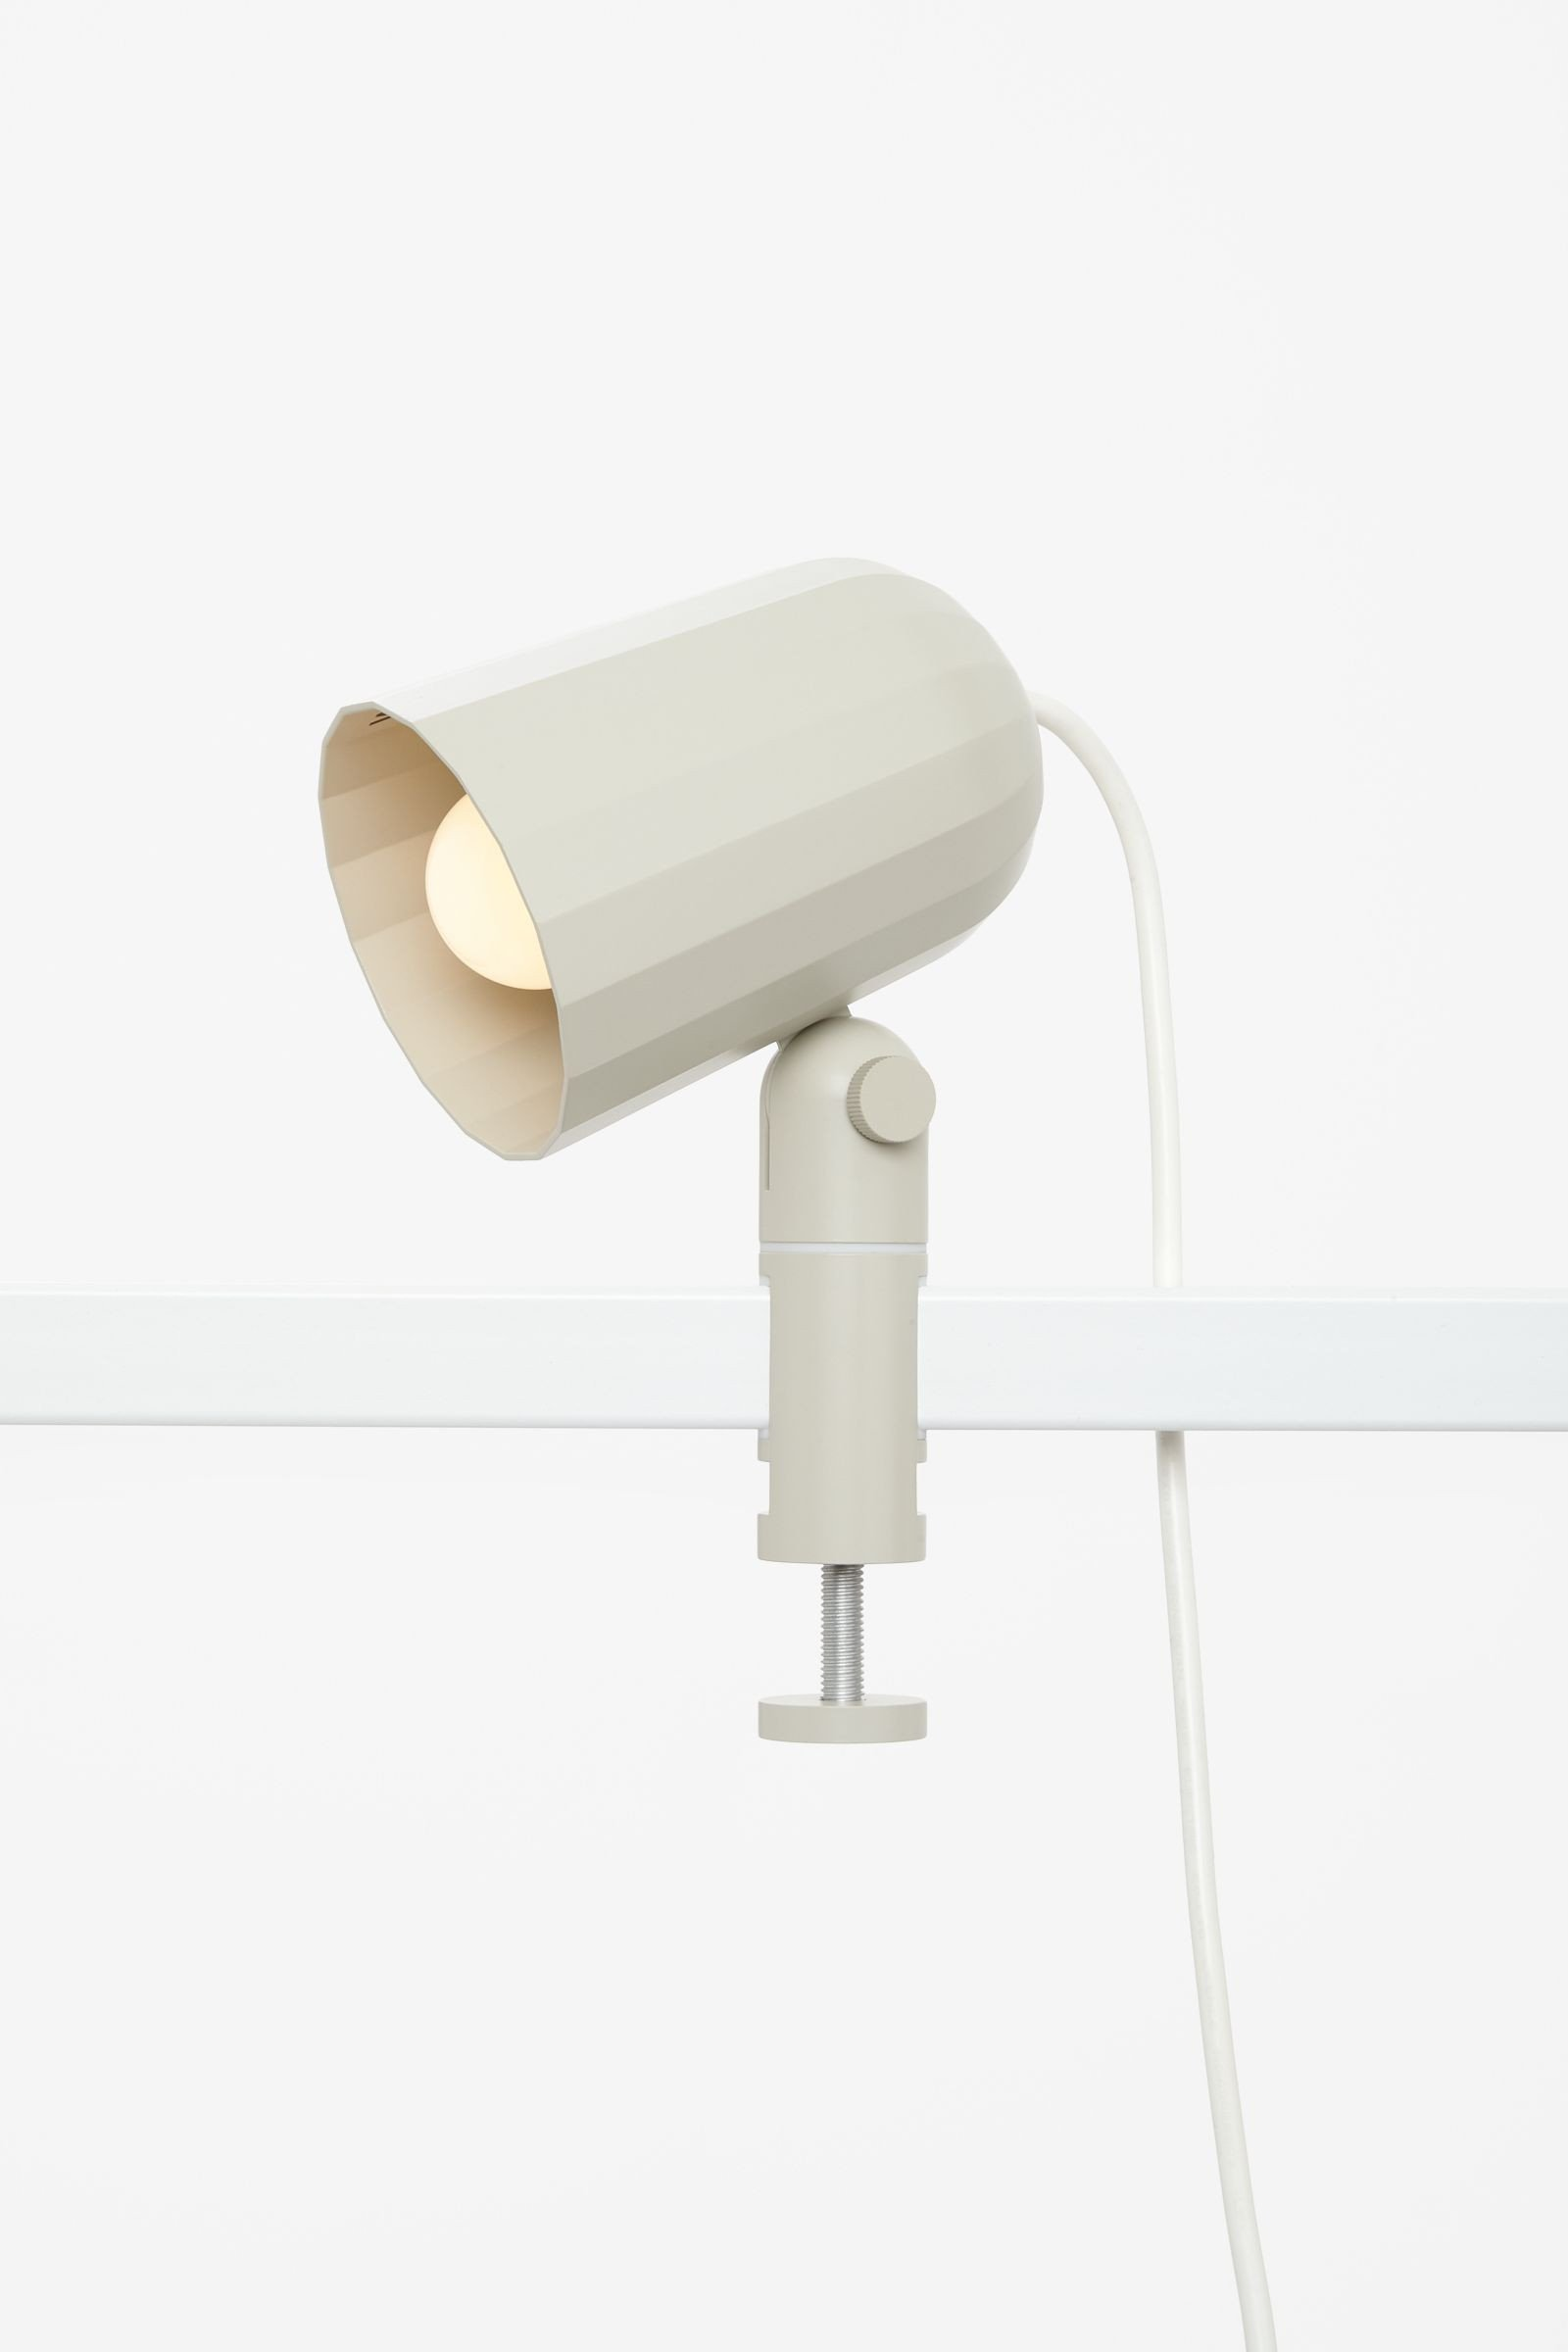 Clip On Bedroom Light Awesome A Versatile Light with Two Points Of Adjustment This Lamp